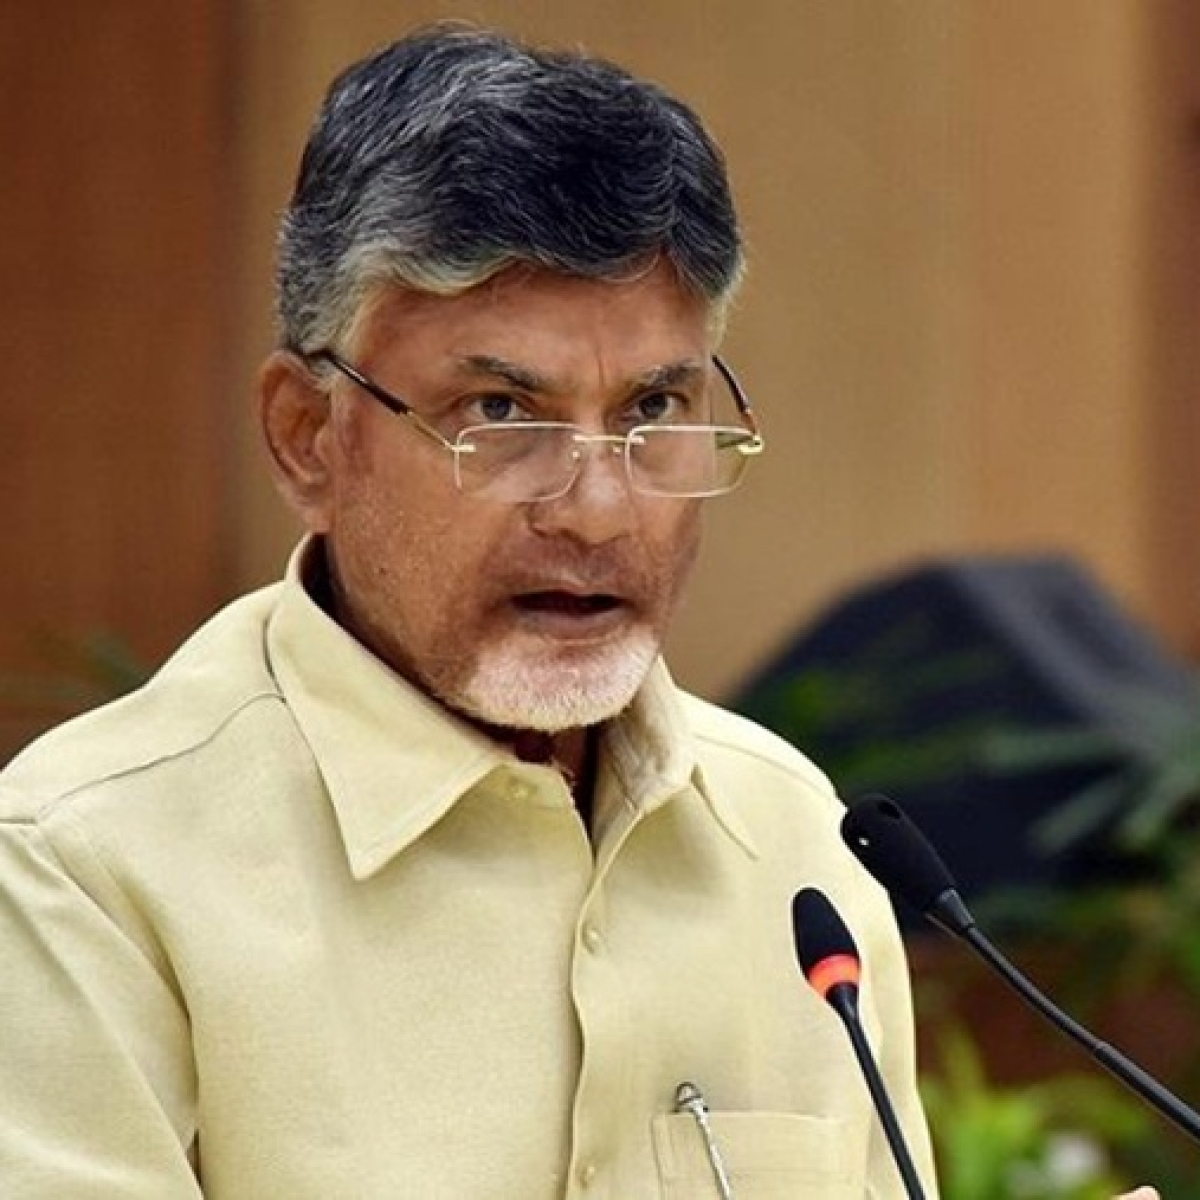 'Is this a love letter?': Twitter trolls Chandrababu Naidu after he 'thanks' Amit Shah